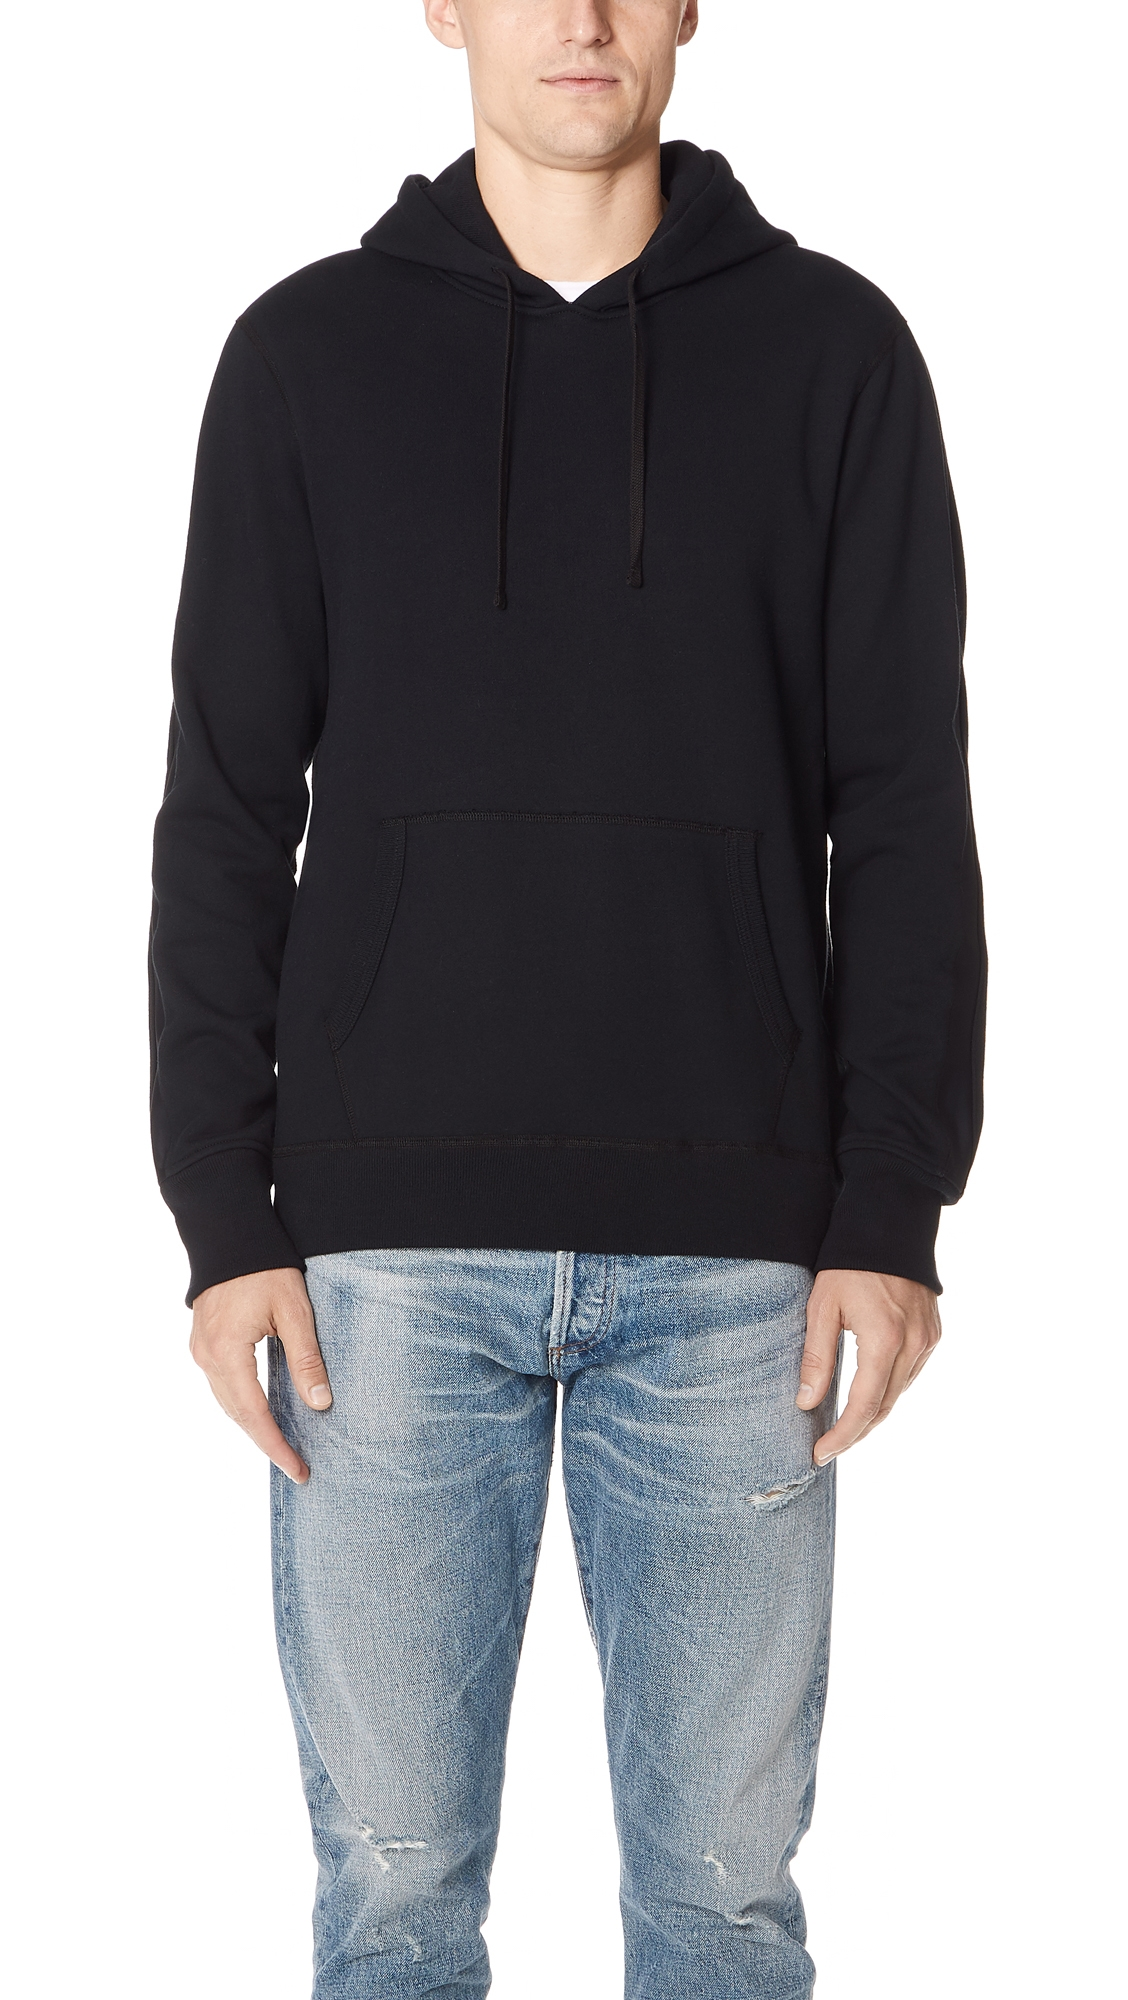 REIGNING CHAMP FIGHT NIGHT HOODIE